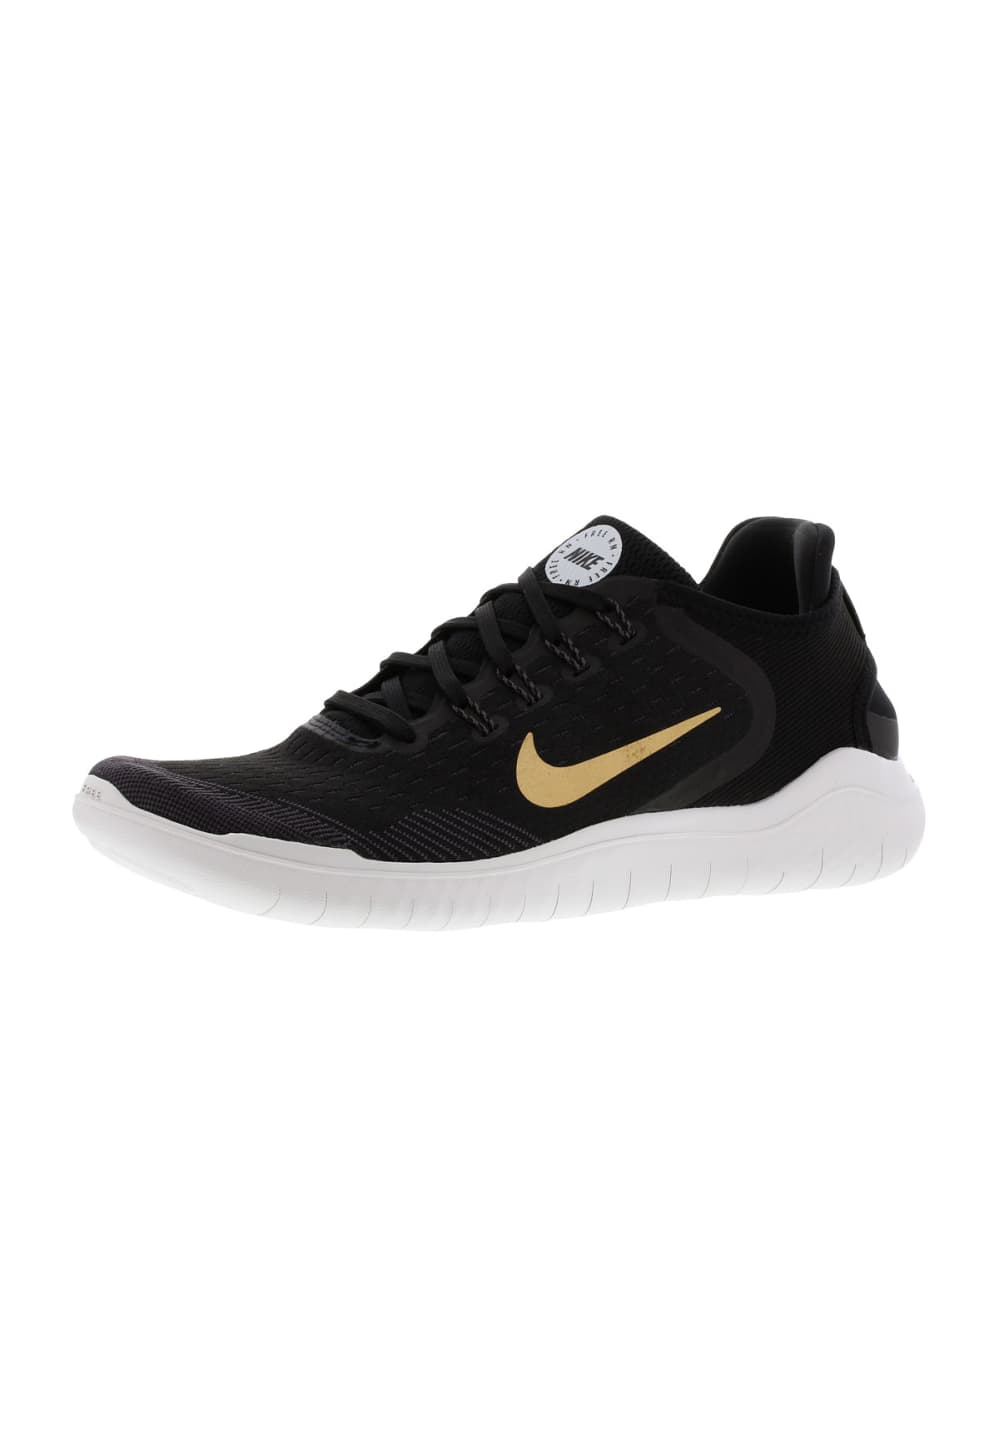 225e281bd6fa Next. -60%. This product is currently out of stock. Nike. Free RN 2018 - Running  shoes for Women